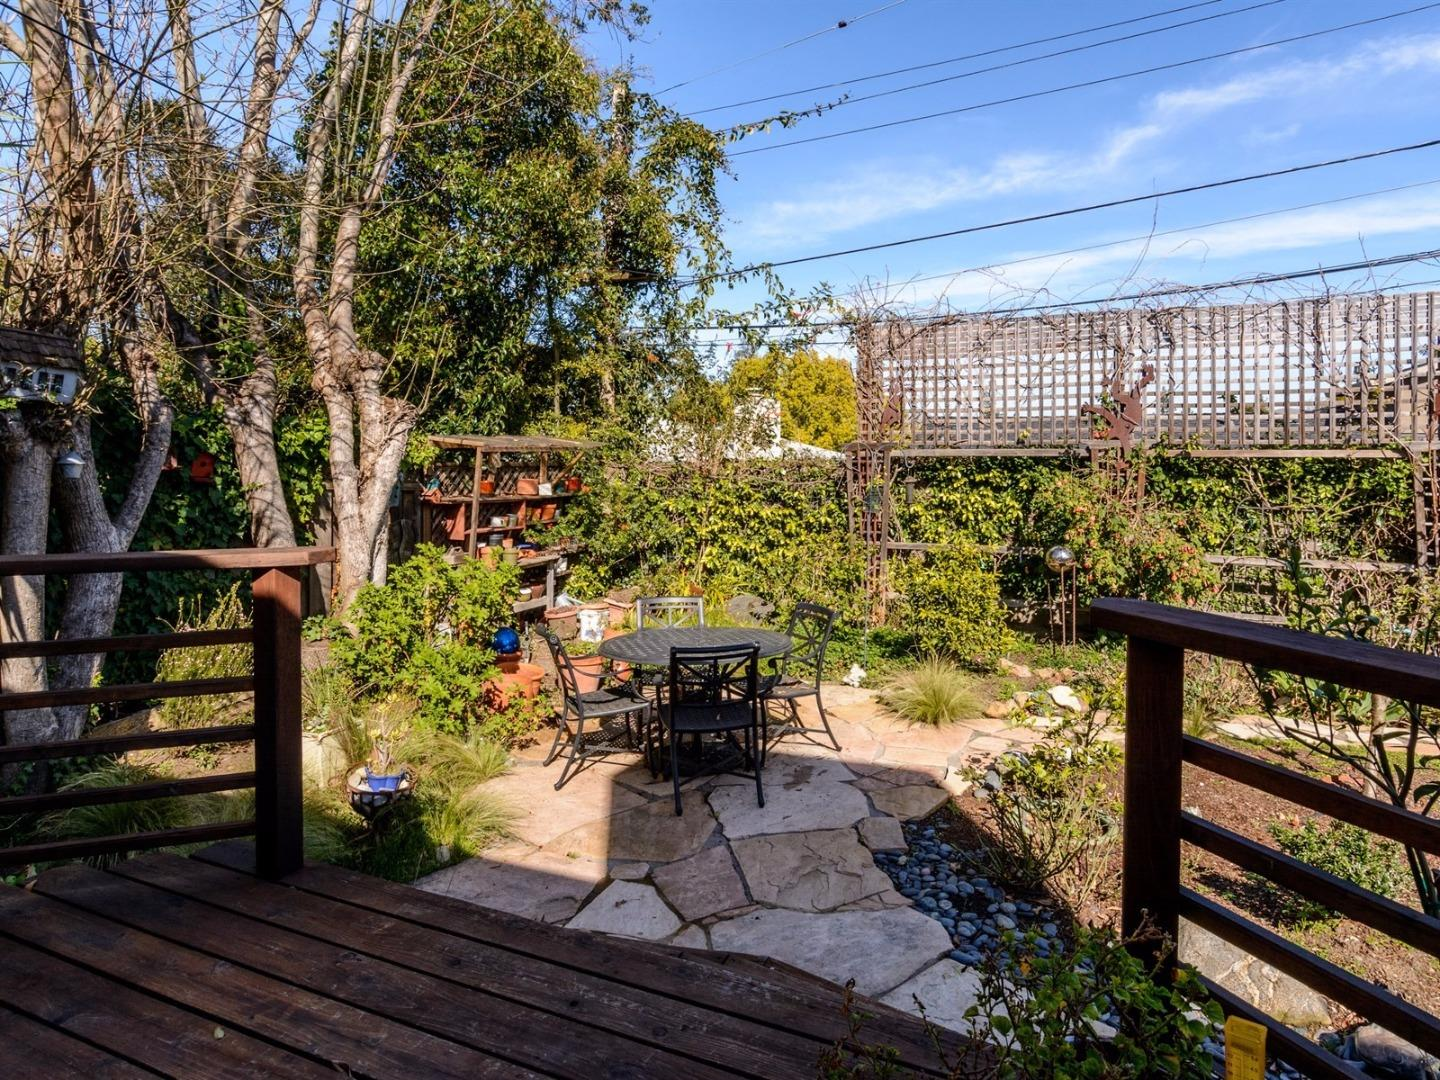 Additional photo for property listing at 1513 Mitchell Way  REDWOOD CITY, CALIFORNIA 94061